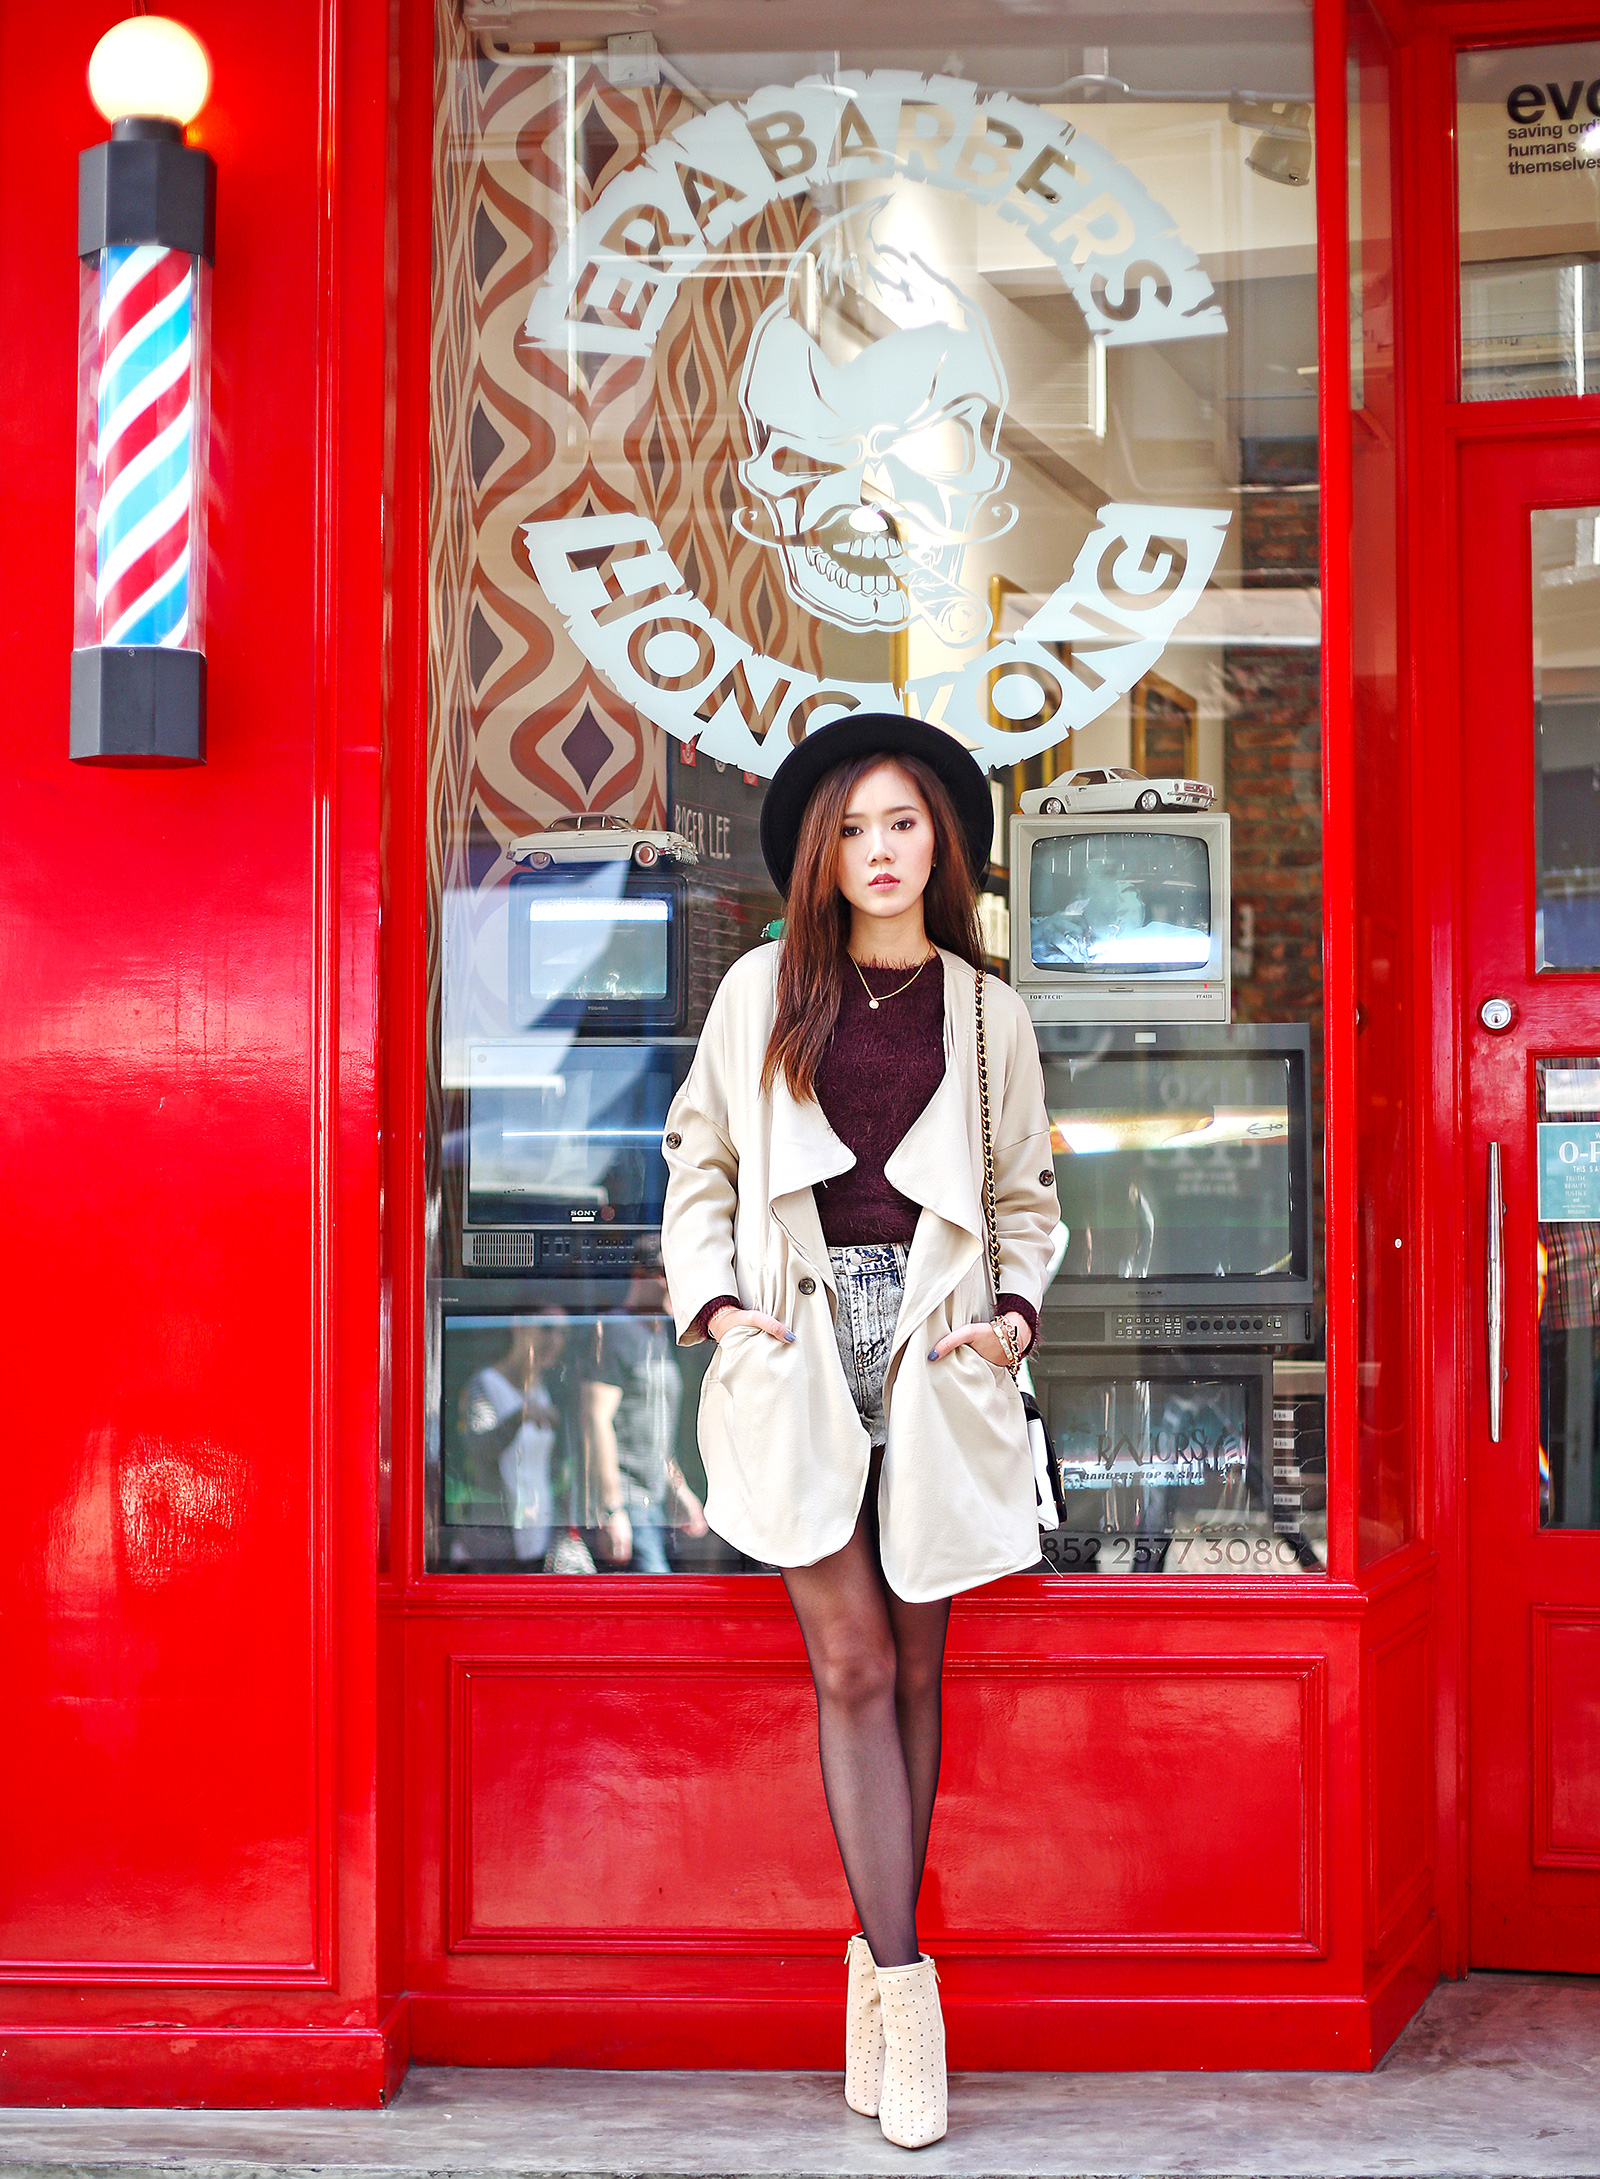 She Inside Coat, Topshop Marsala Sweater, Forever 21 cut=-offs, See by Chloe boots, Moschino bag | www.itscamilleco.com